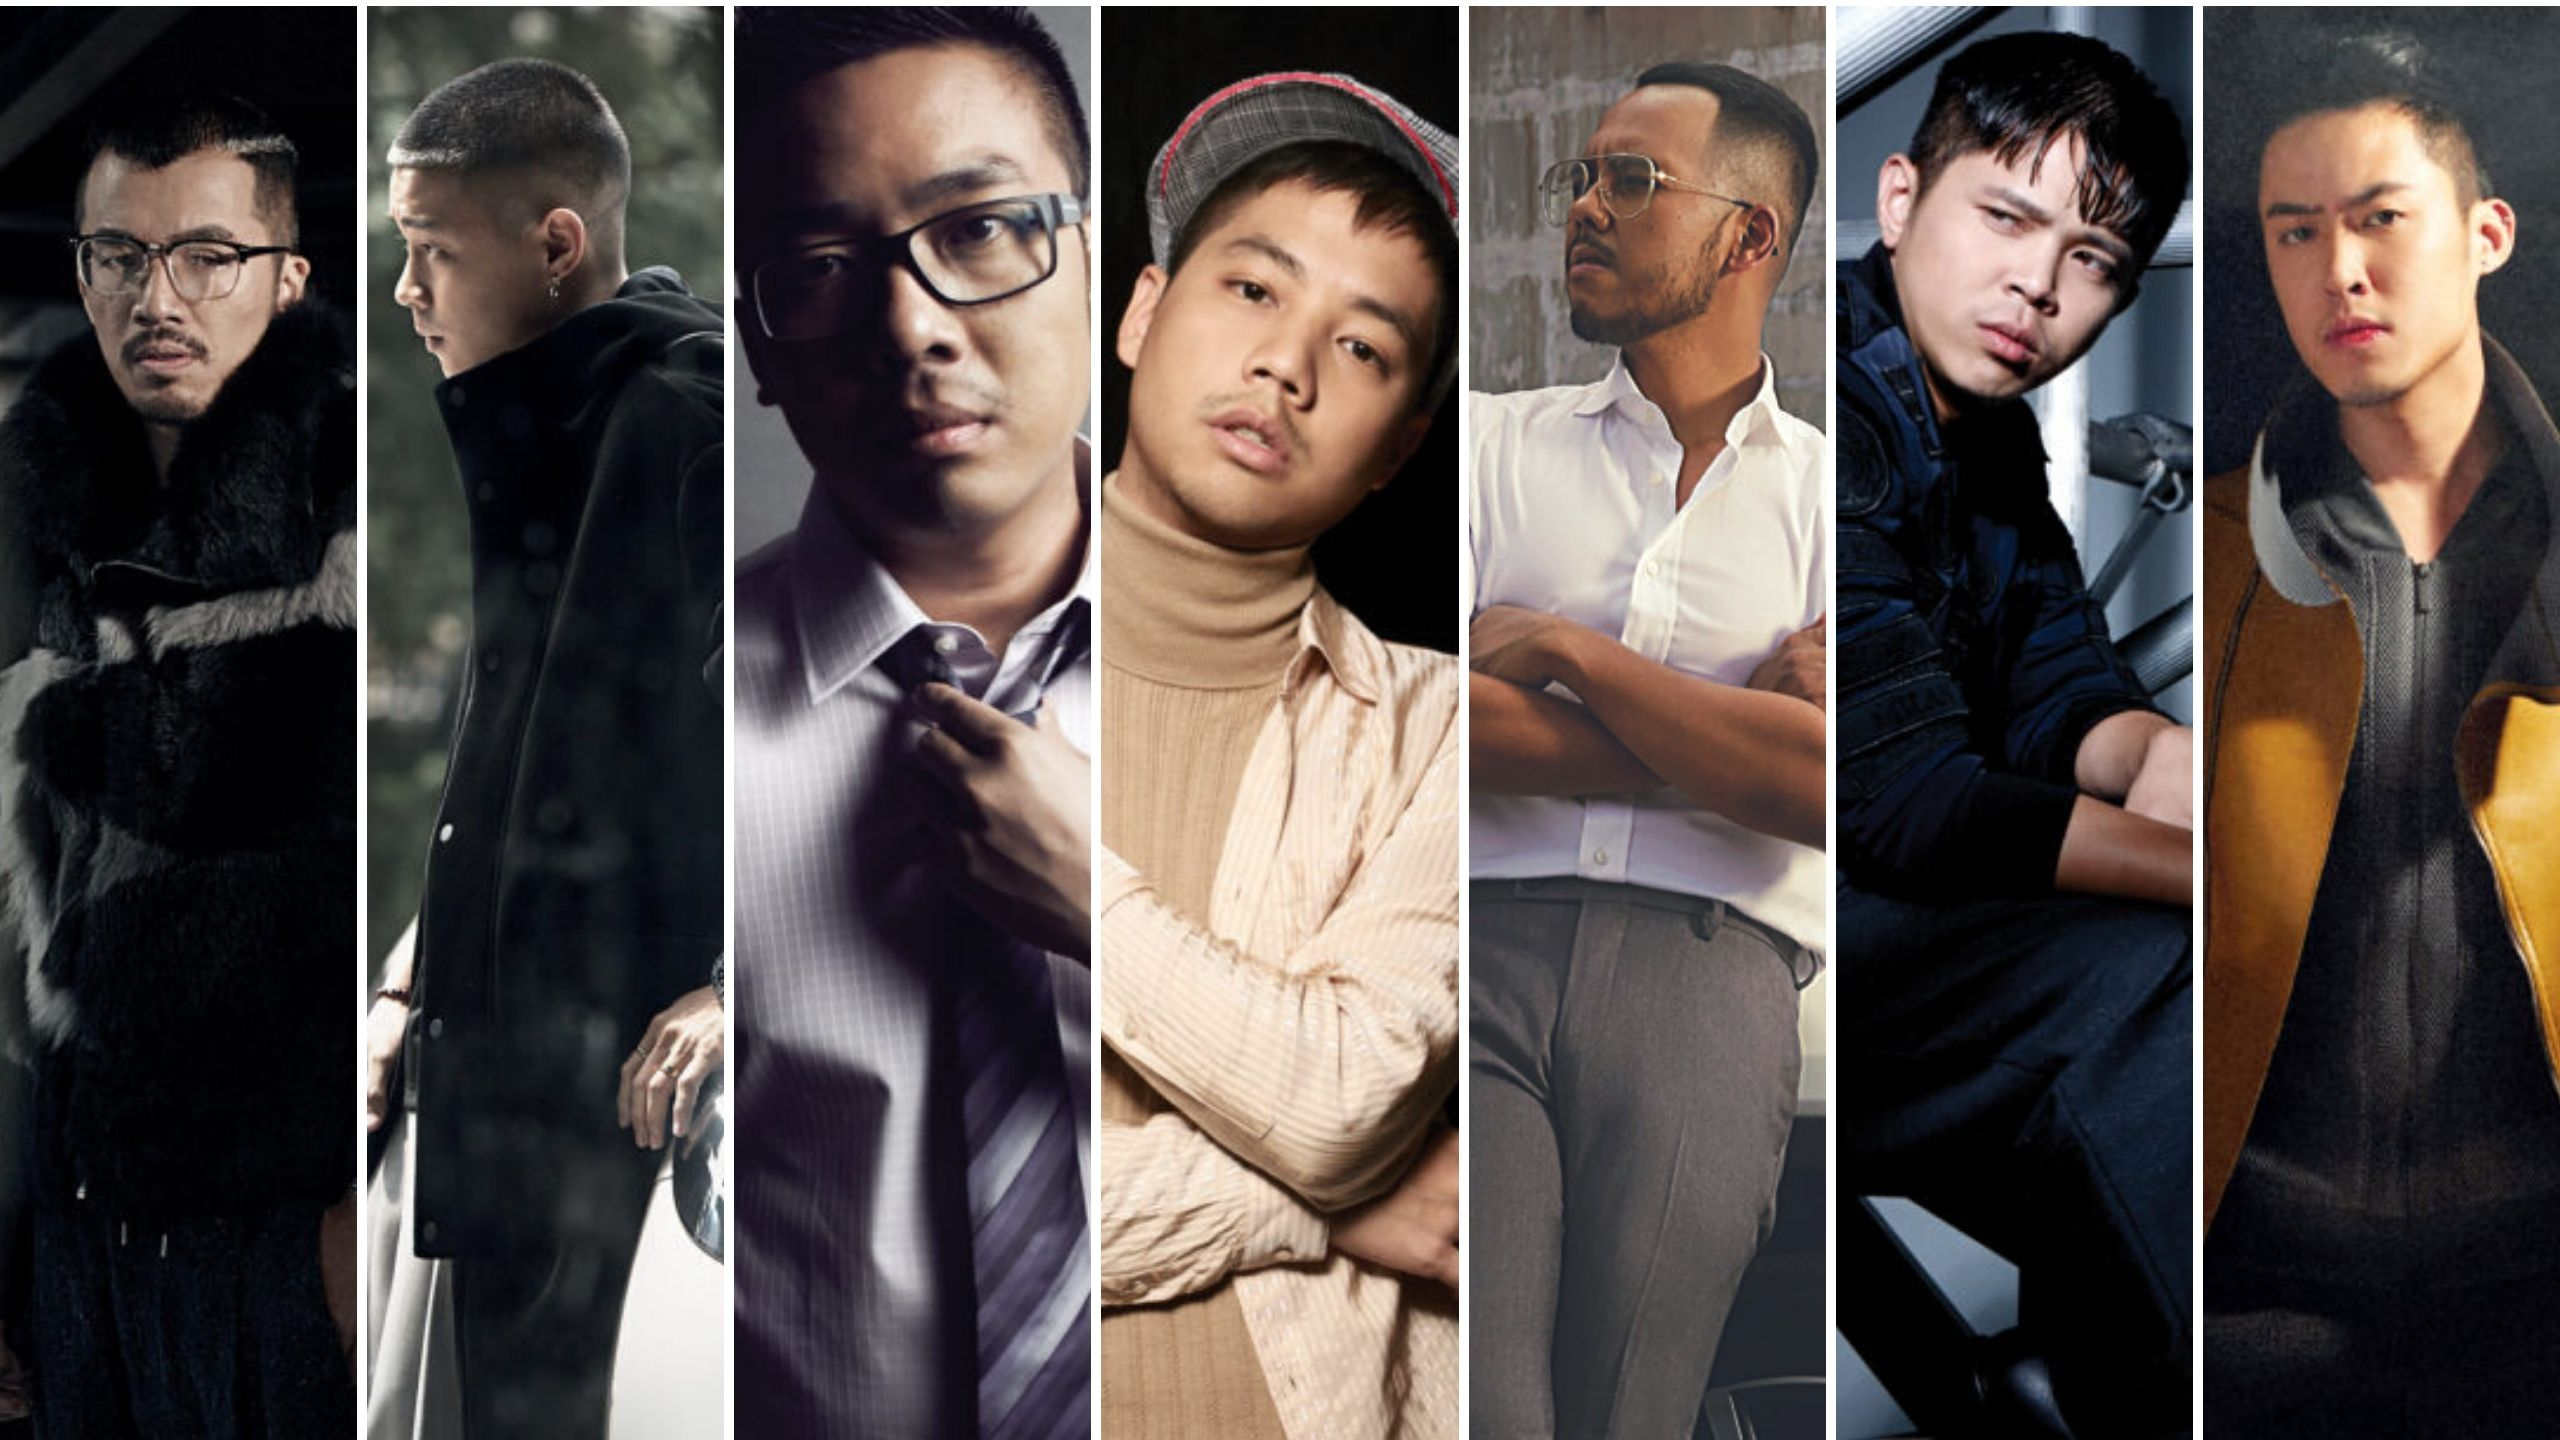 August Man Malaysia May 2020 Cover Story: Checking In With Some Men Of The Year